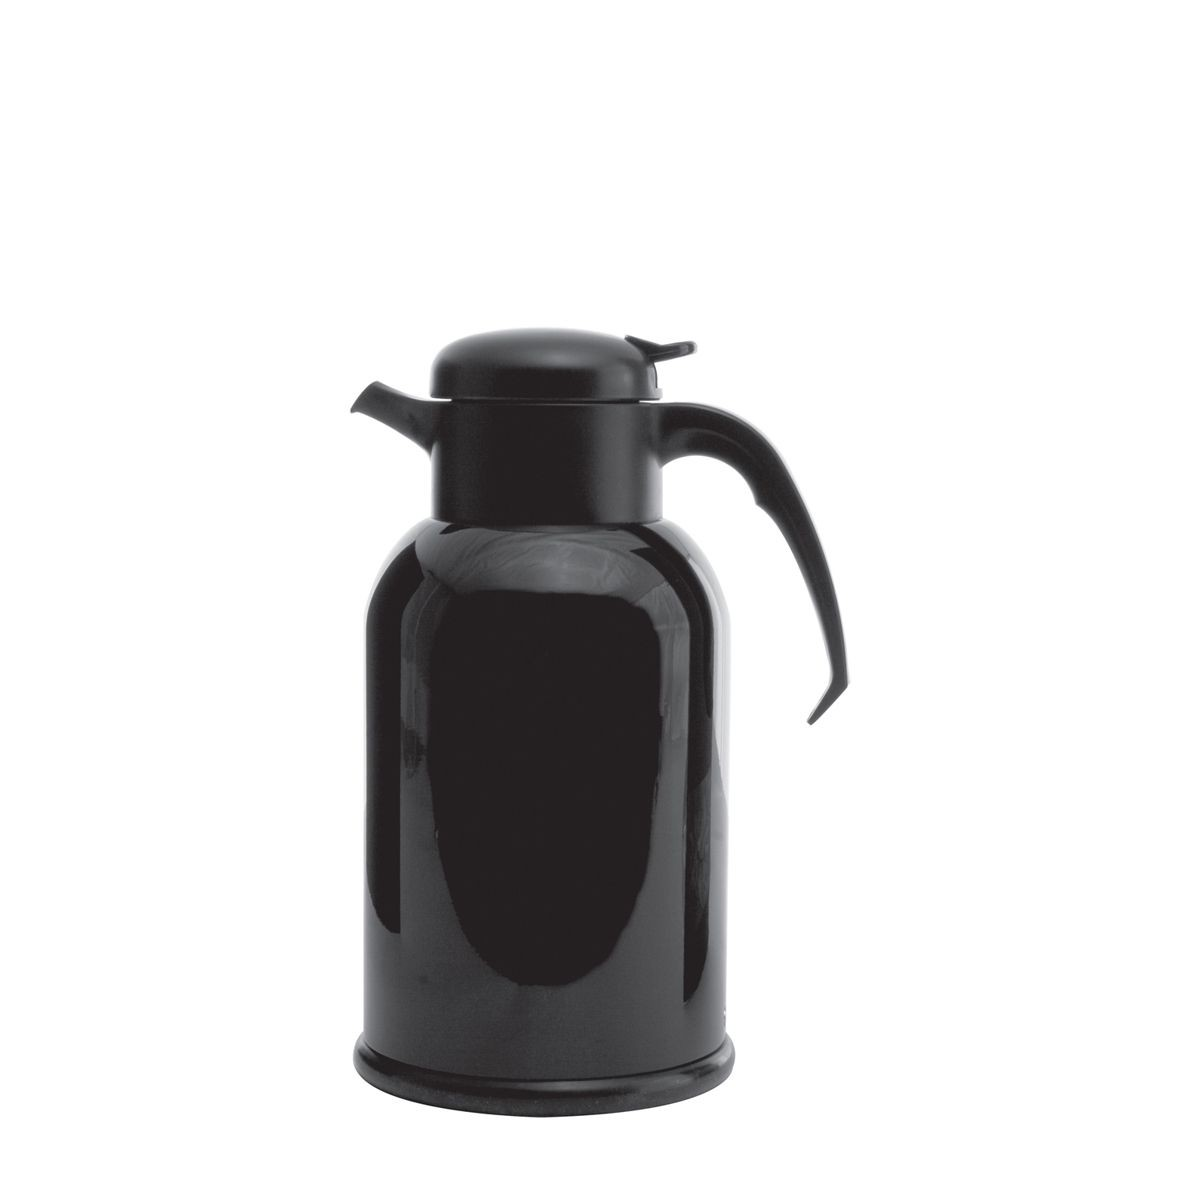 Service Ideas H100B Modern Black Thermal Coffee Server, 1 Liter